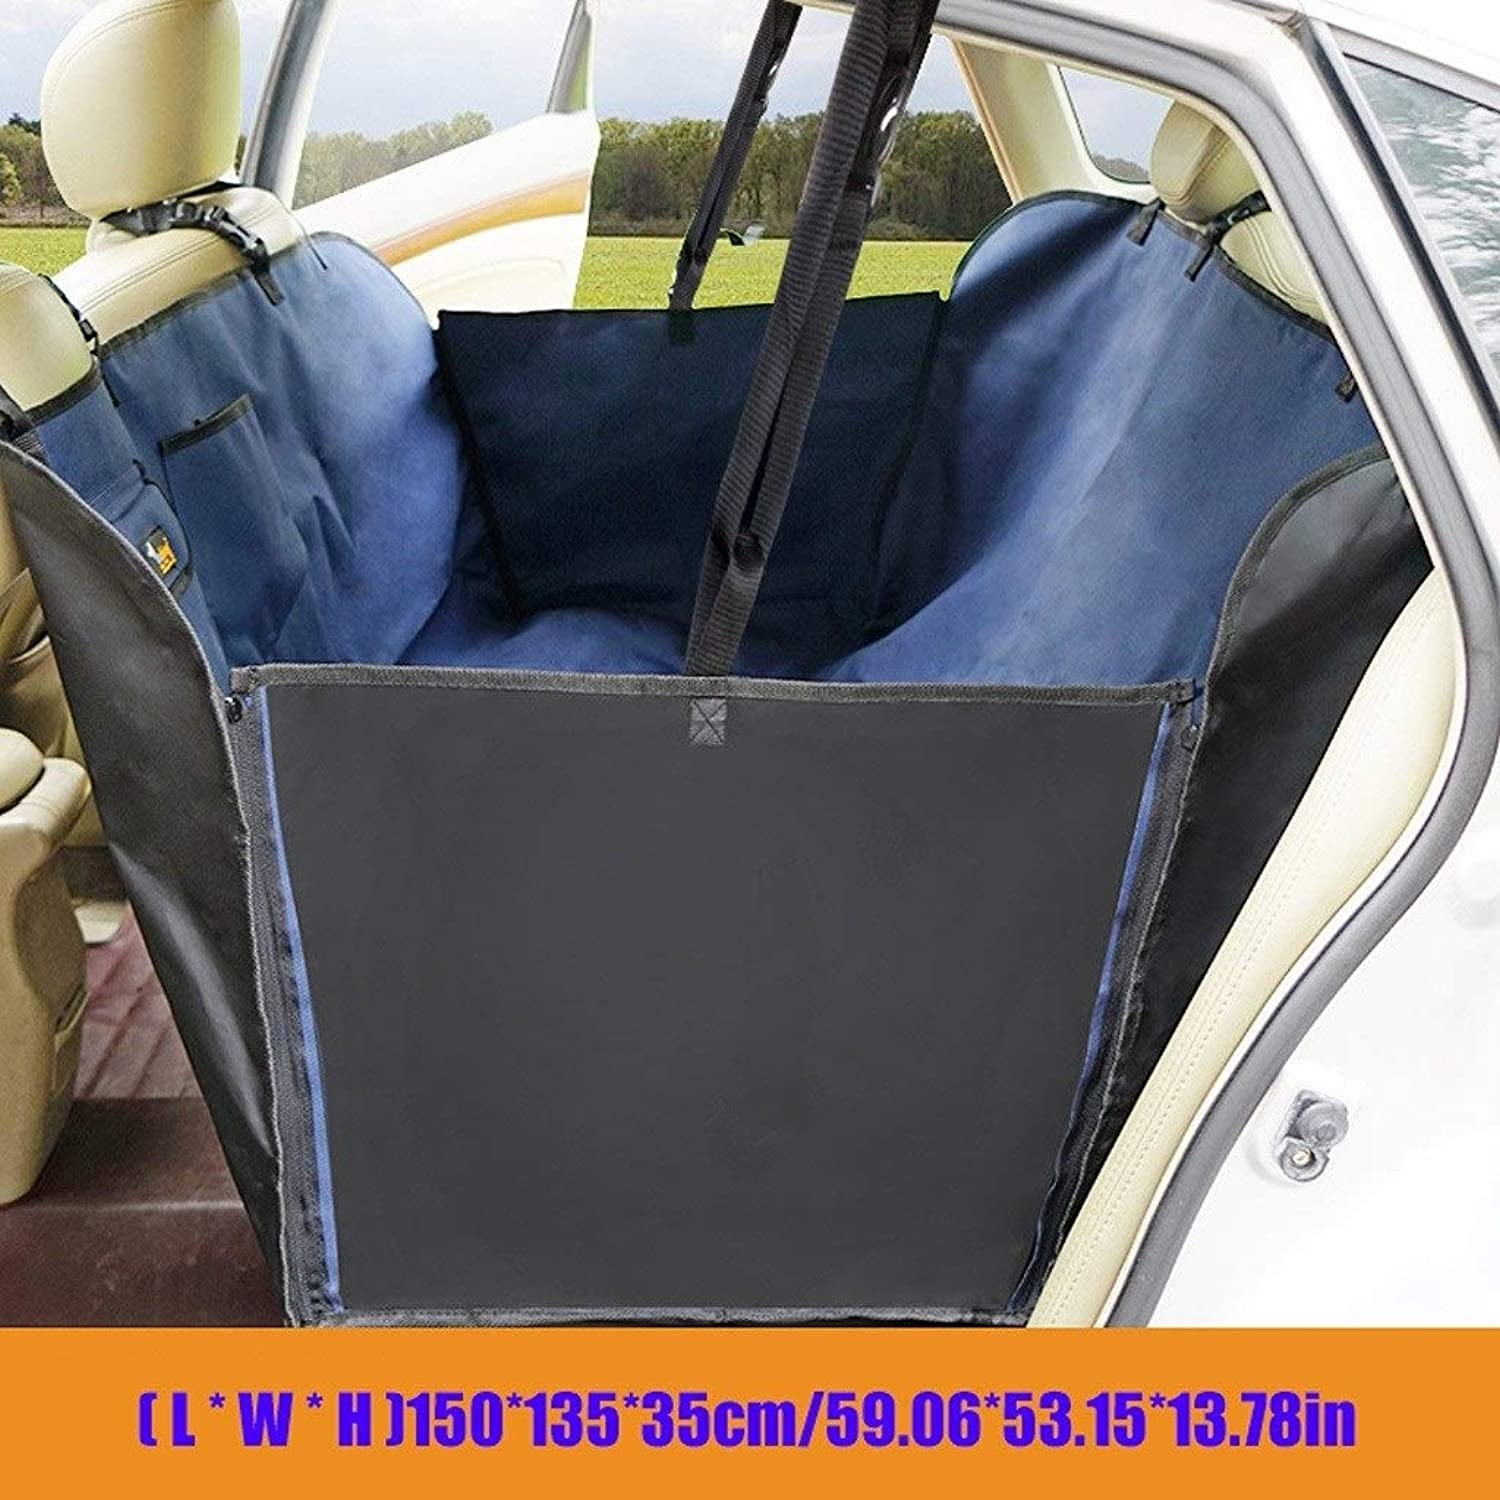 HOSHT Dog Car Seat Covers Hammock Tan, Universal for Most Cars, Trucks and SUV Pet Car Seat Cover Duty Scratch Proof Nonslip Durable Soft (color   bluee)